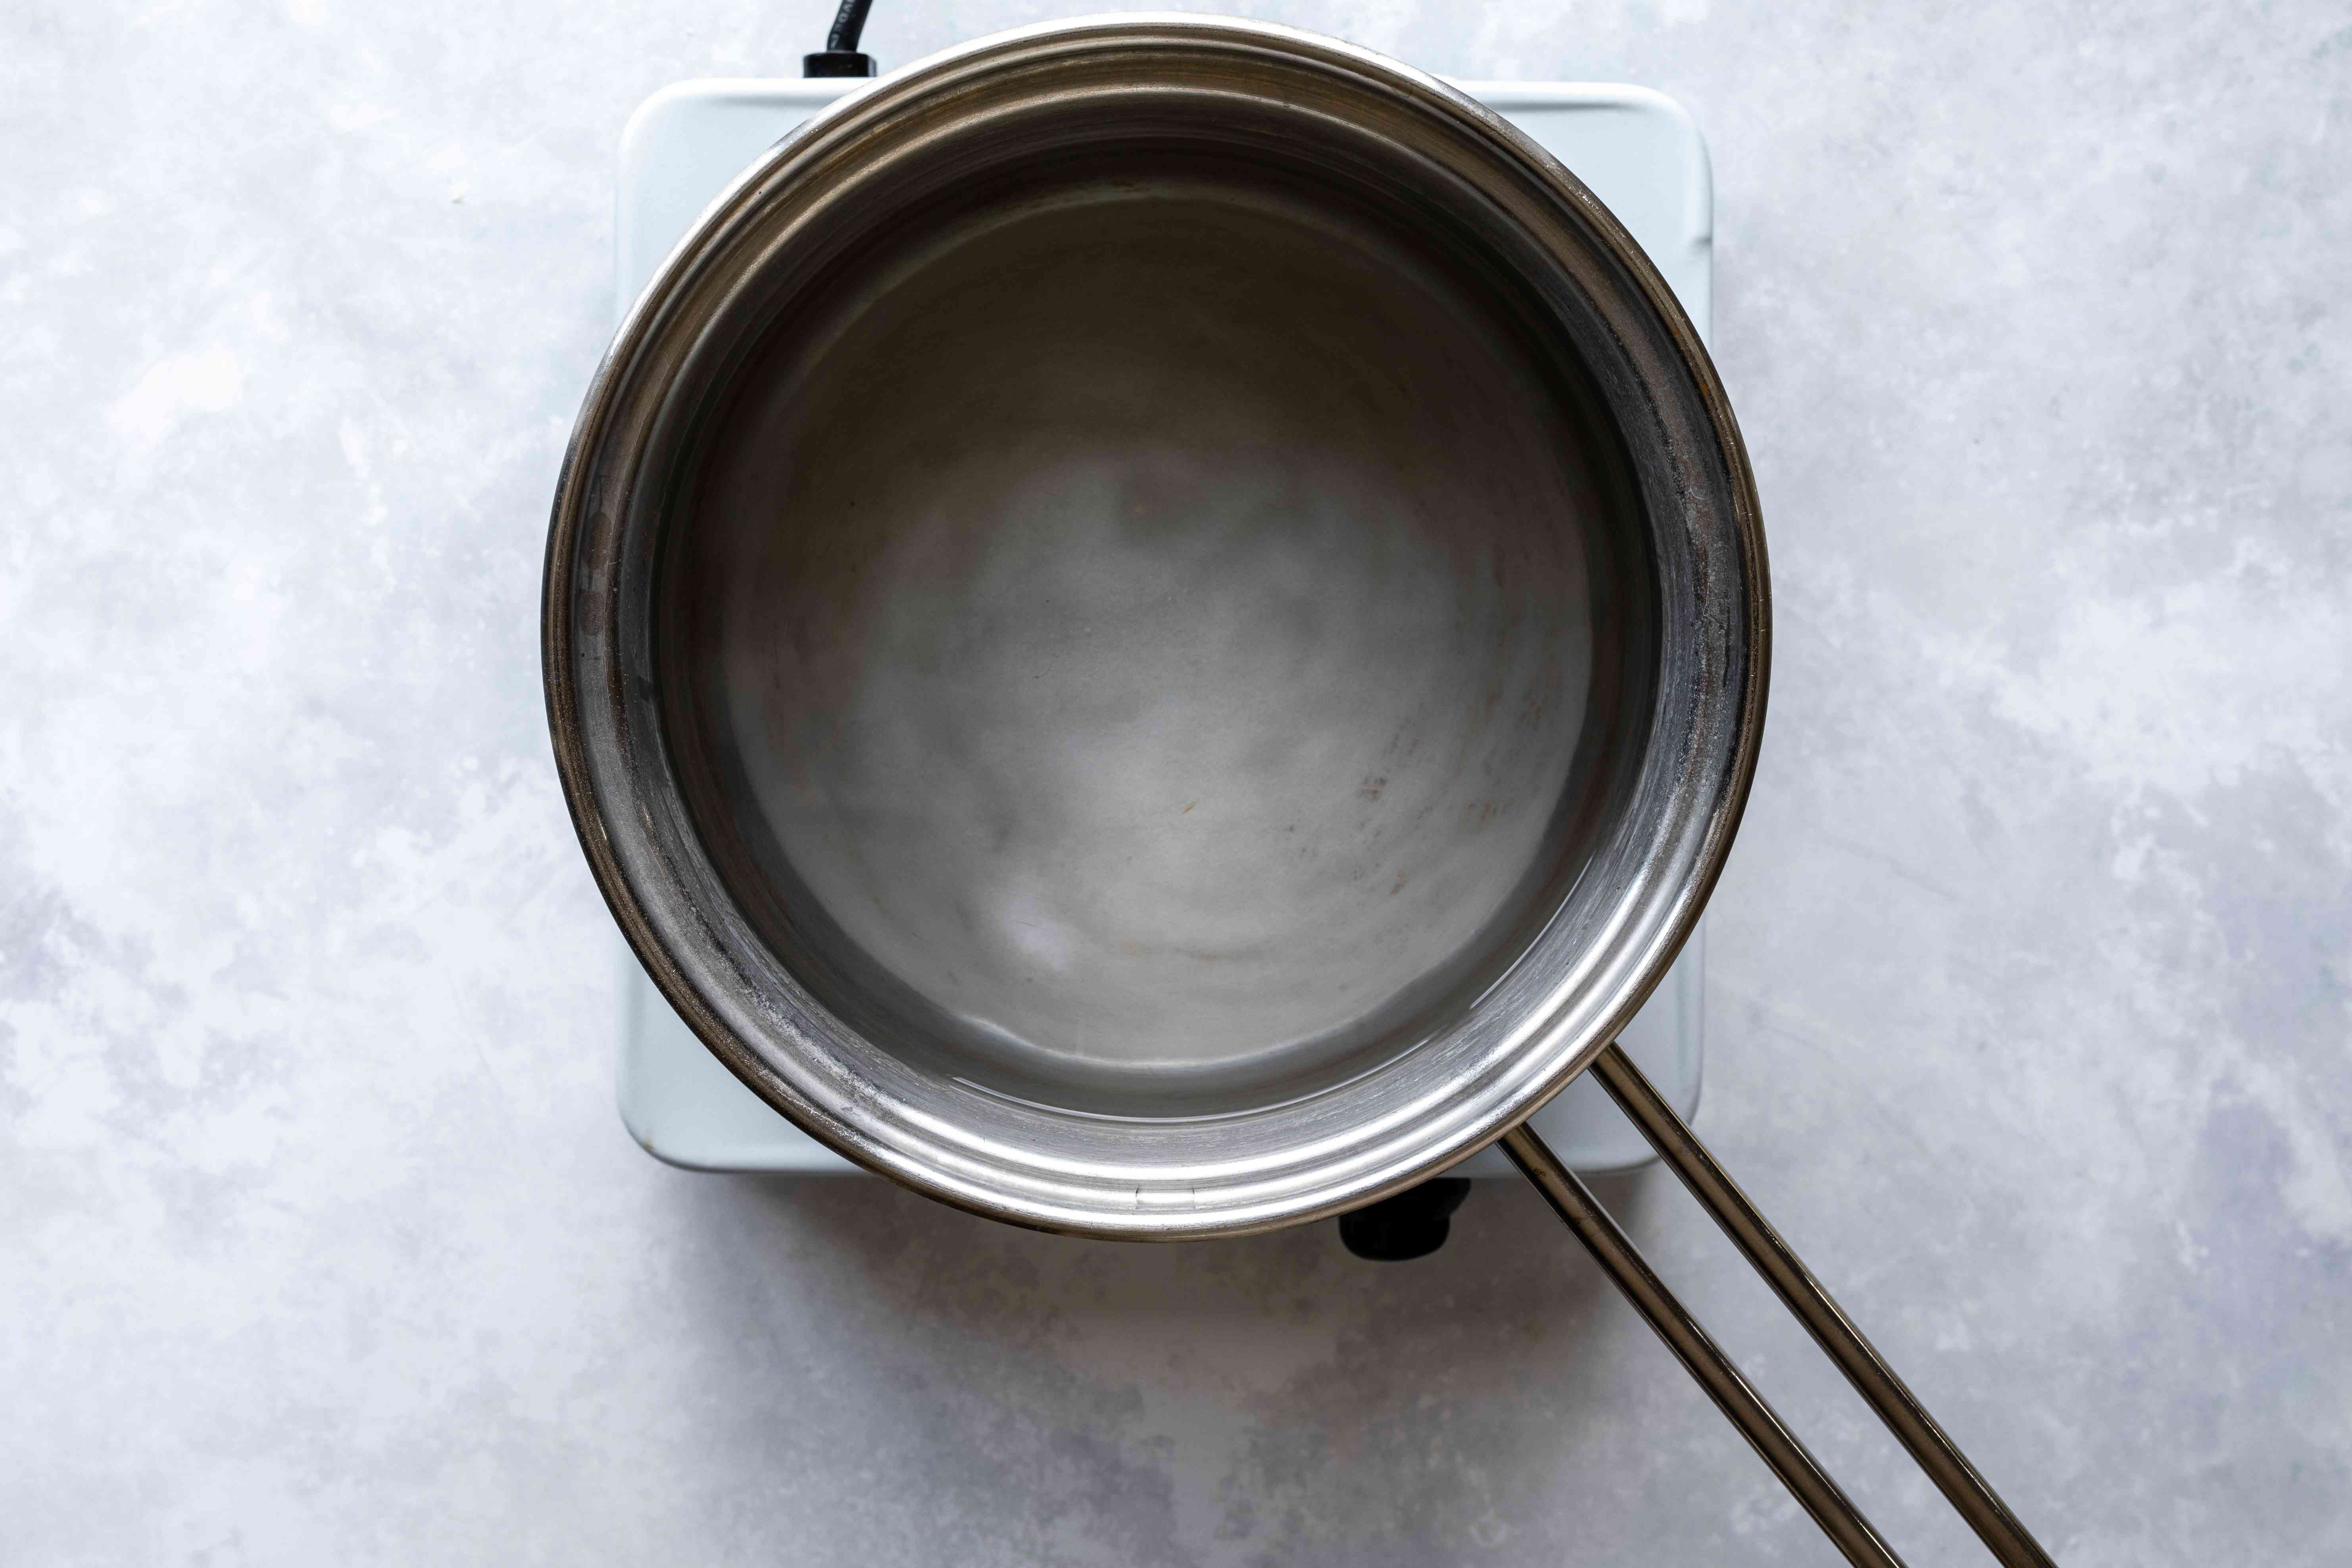 Bring water and baking soda to a boil